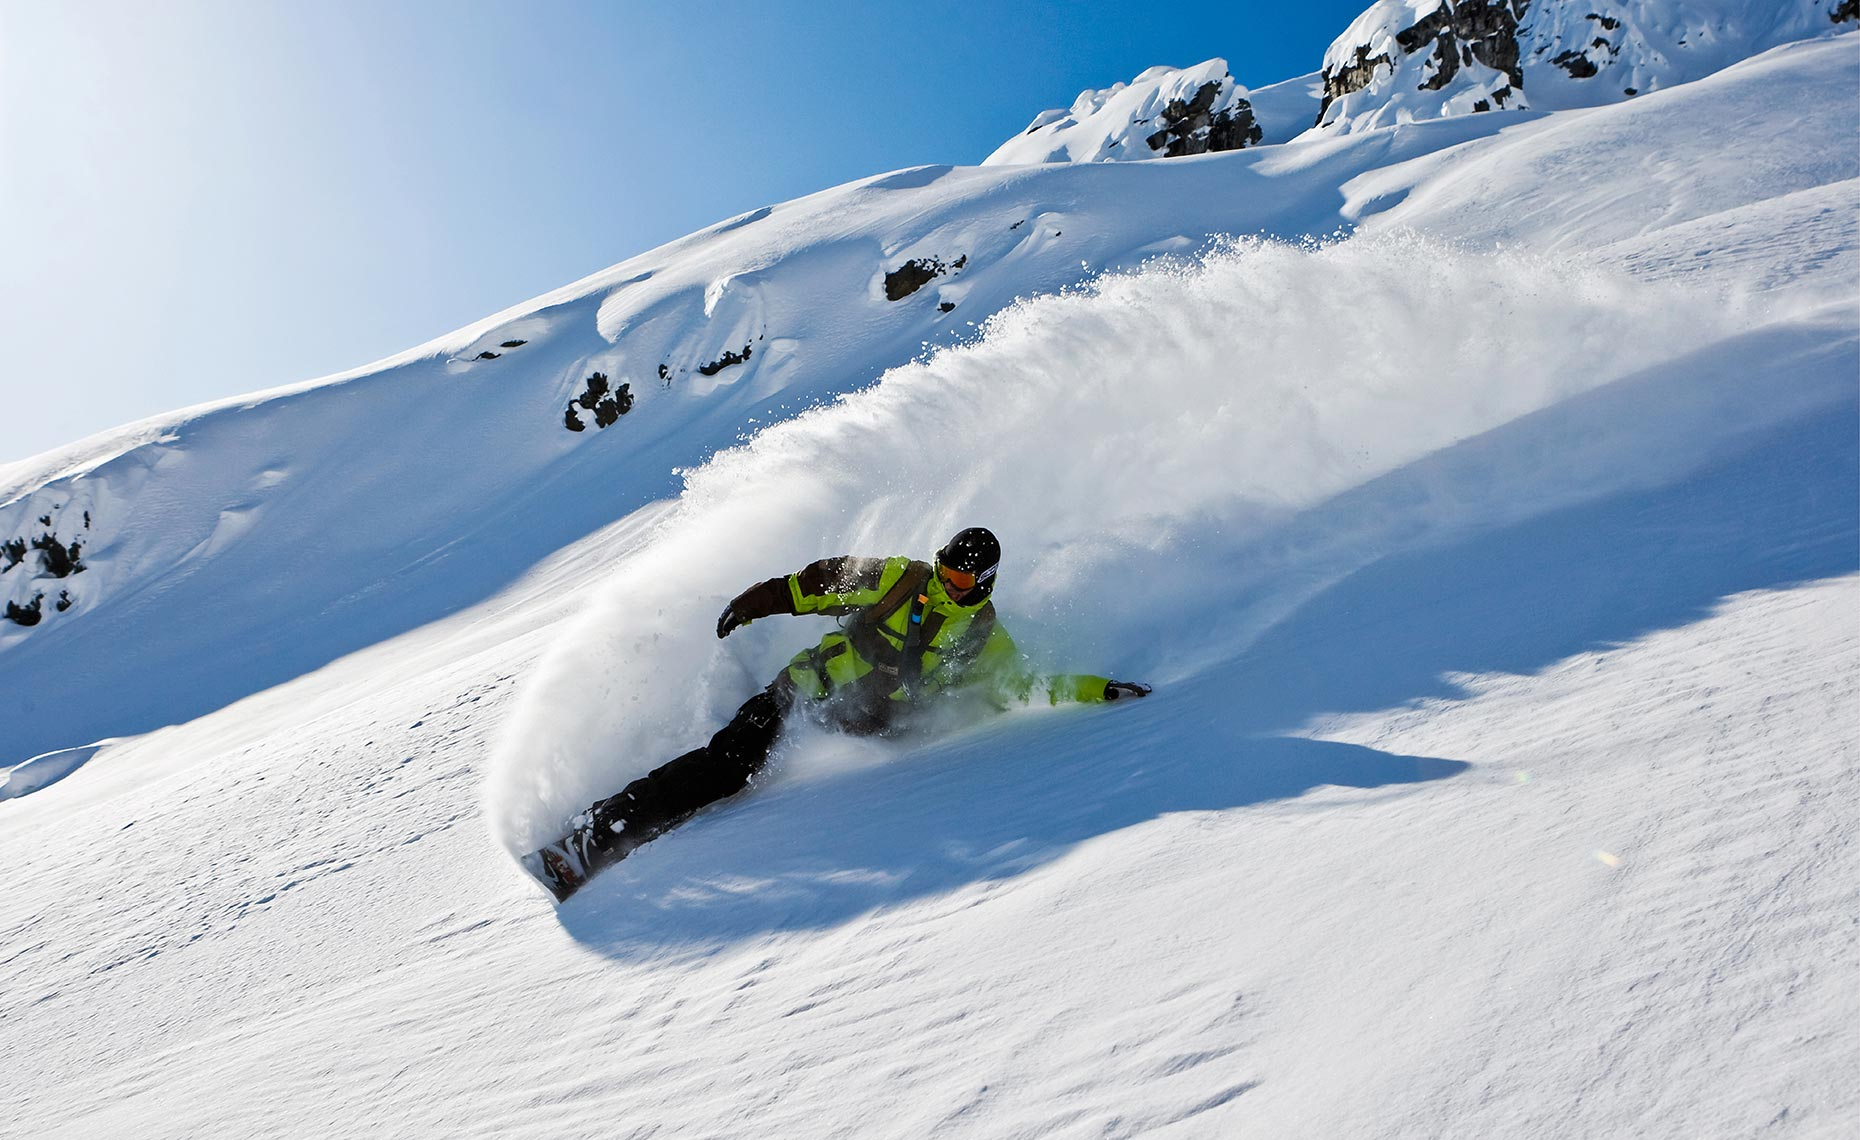 13_Josh_Dirksen_CMH_Heliboarding_Powder_Snowboarding_Chris_Wellhausen_Photography.JPG